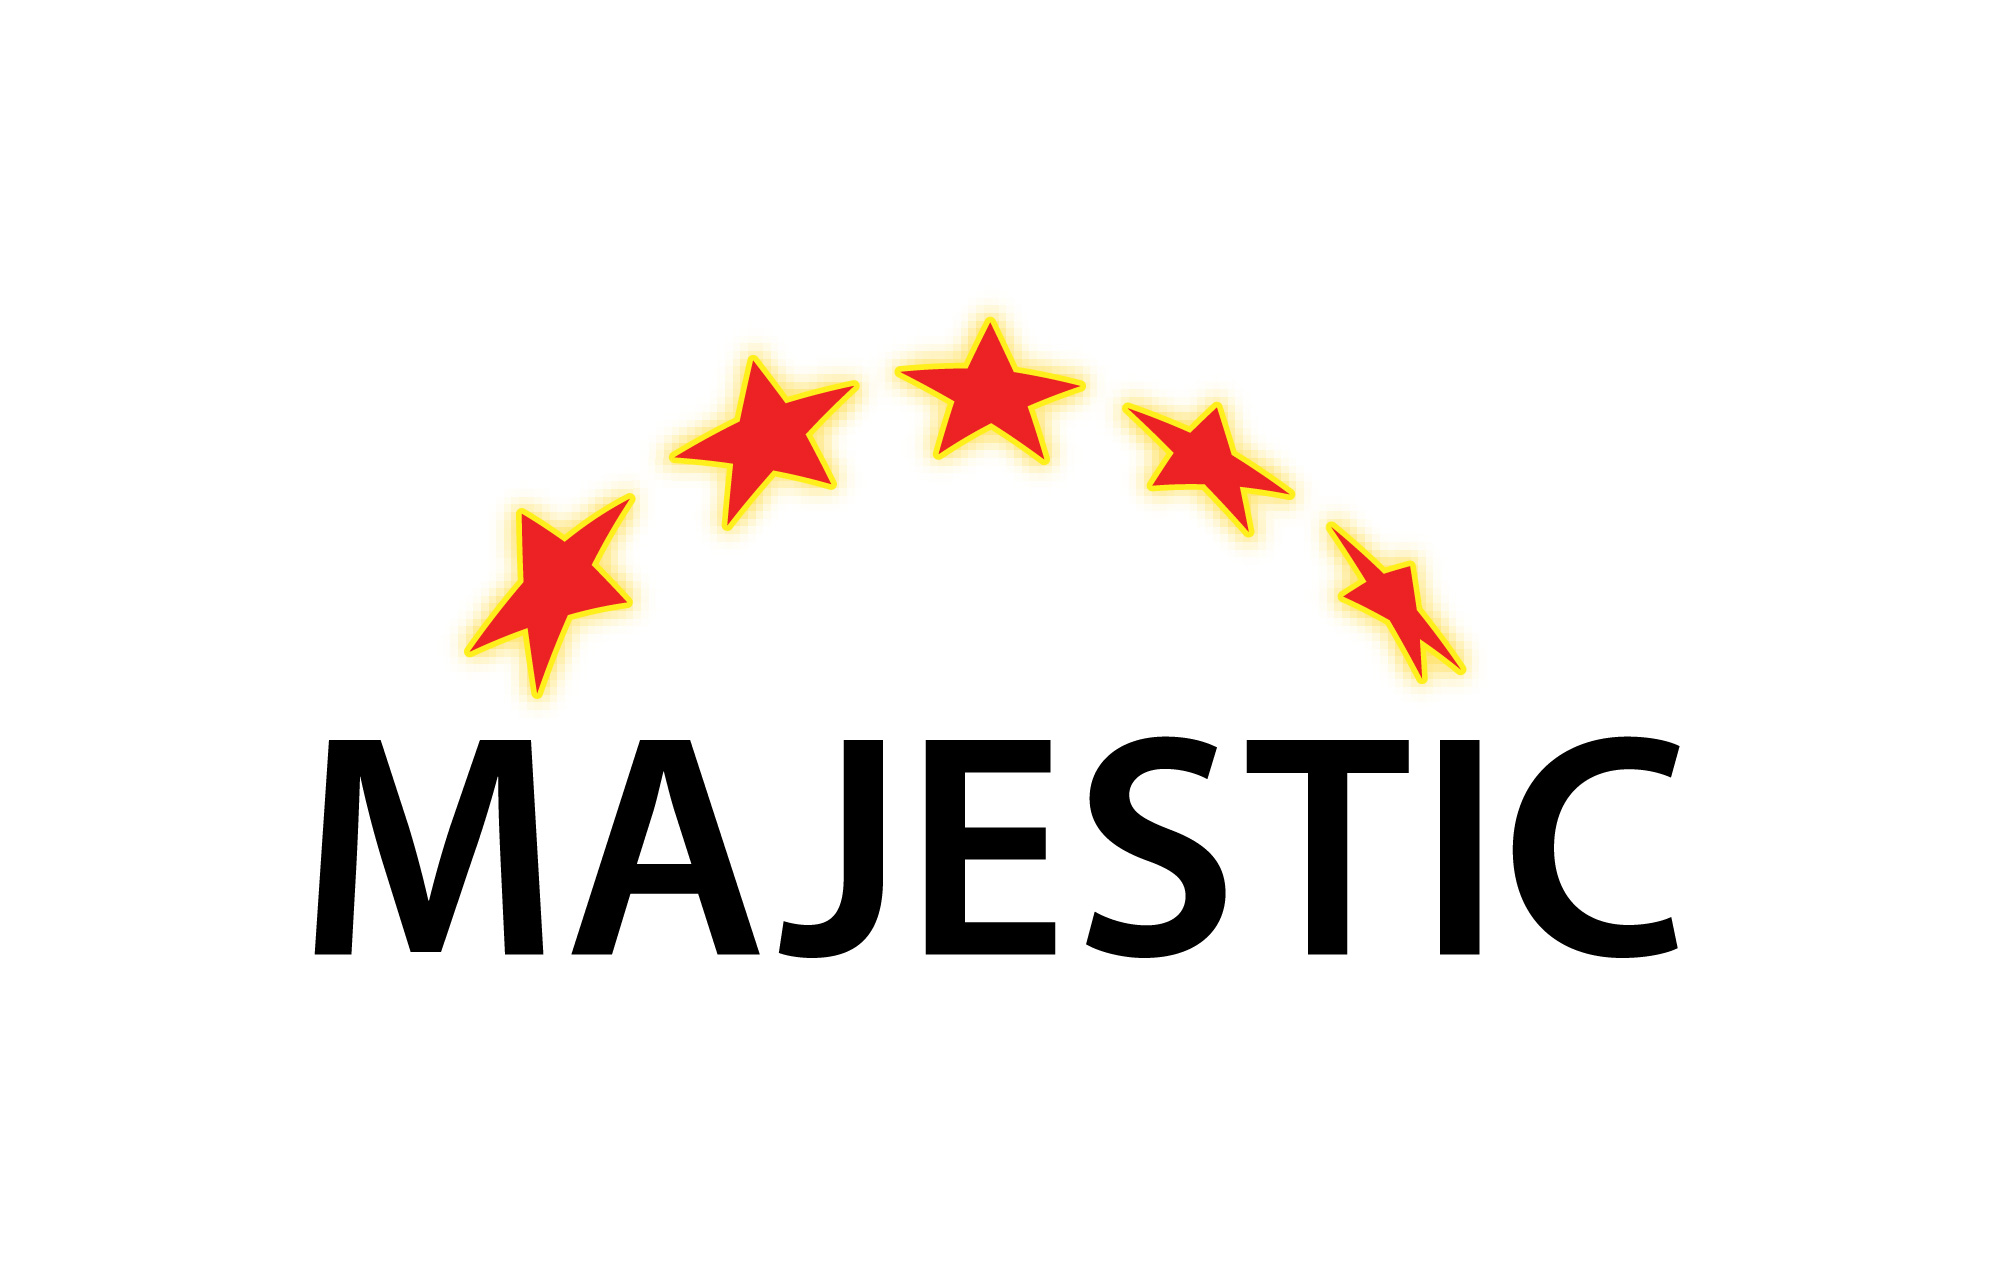 Majestic will be attending our first conference in